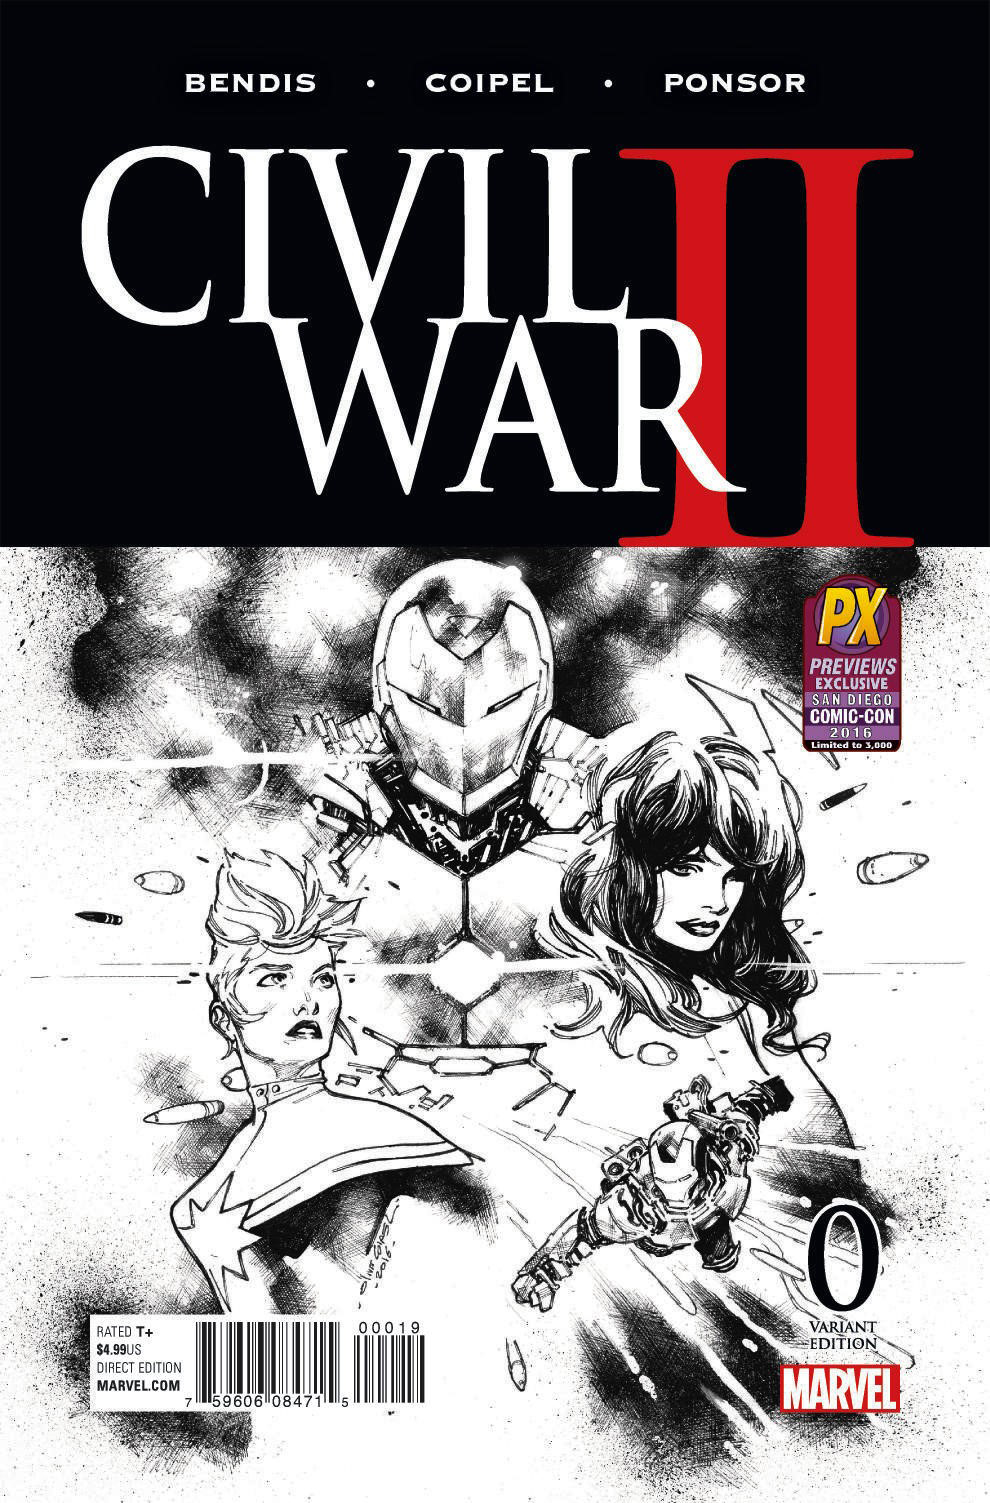 SDCC 2016 CIVIL WAR II #0 (OF 8) COIPEL B&W VAR